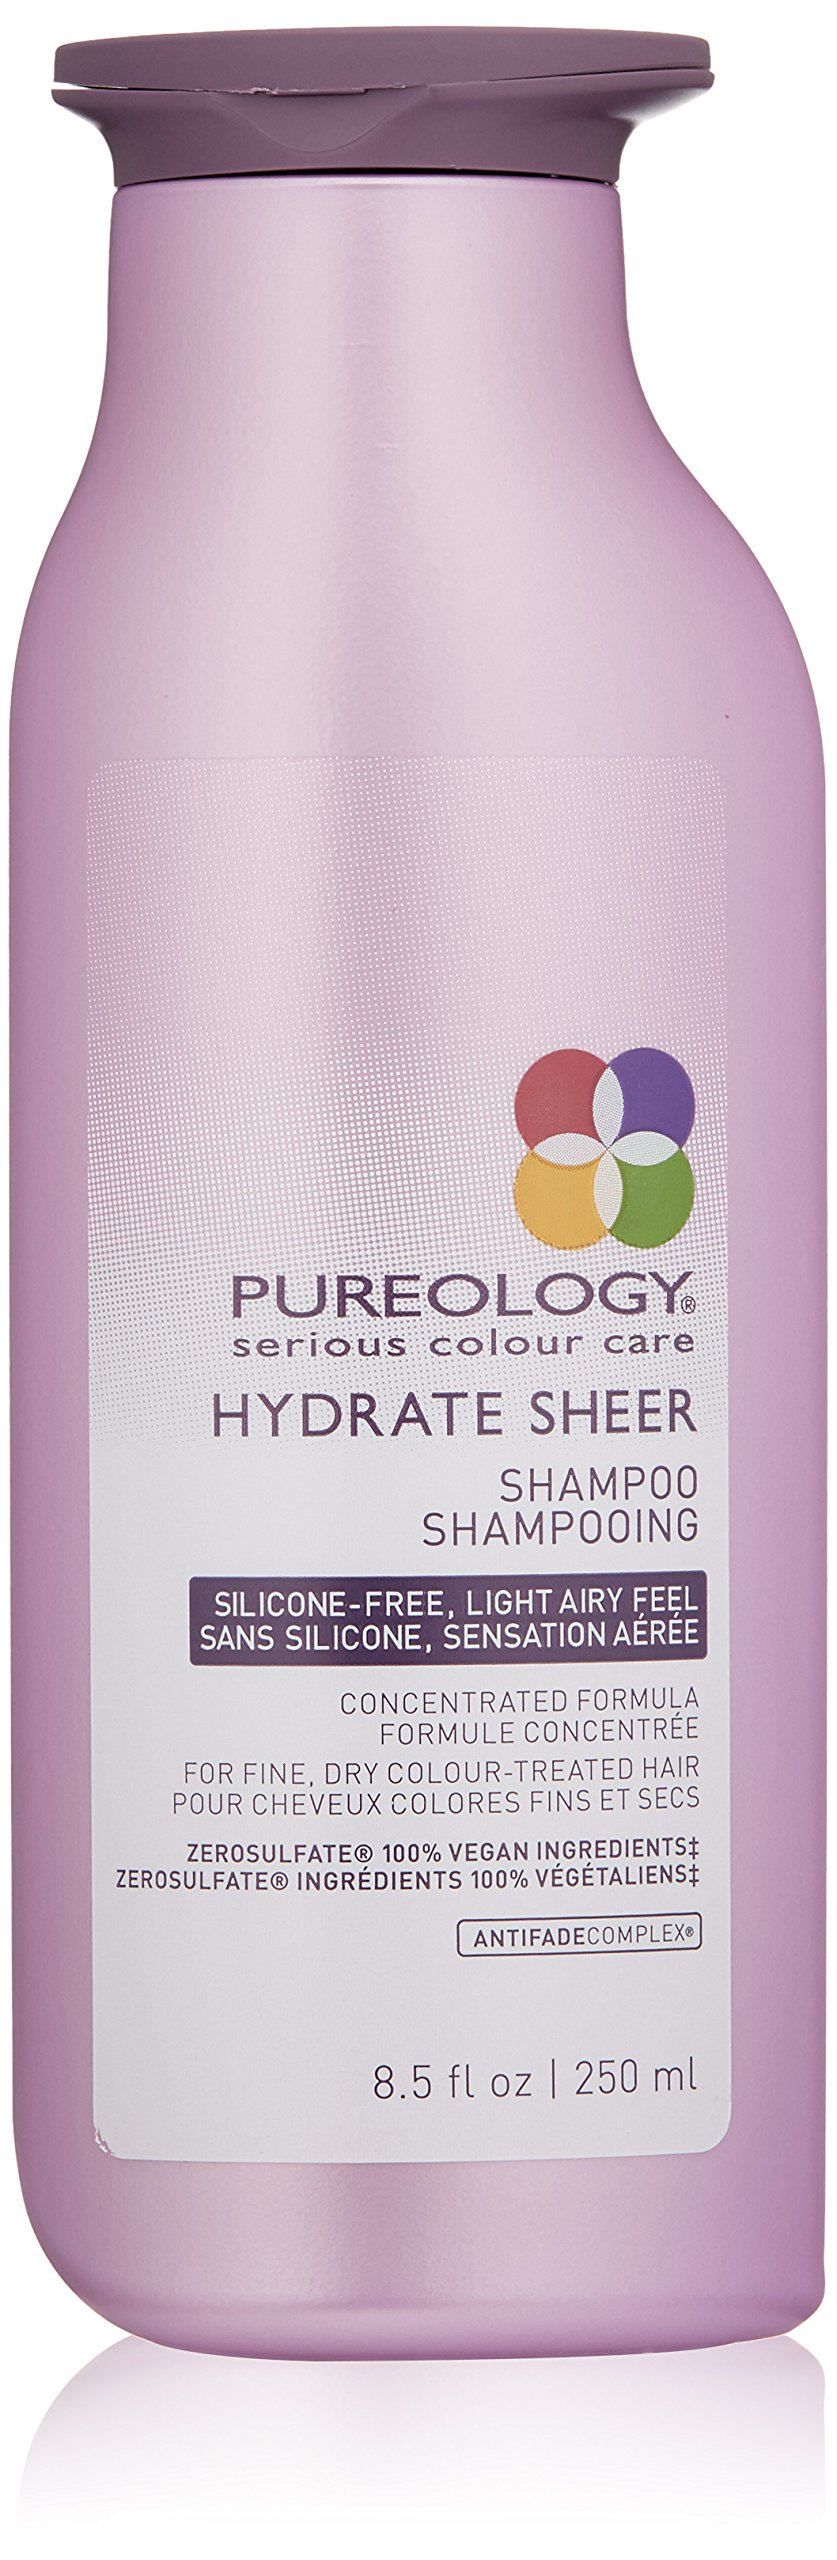 Pureology Hydrate Sheer Moisturizing Shampoo for Color Treated Hair, Sulfate-Free, Silicone-Free,  8.5 oz. by Pureology